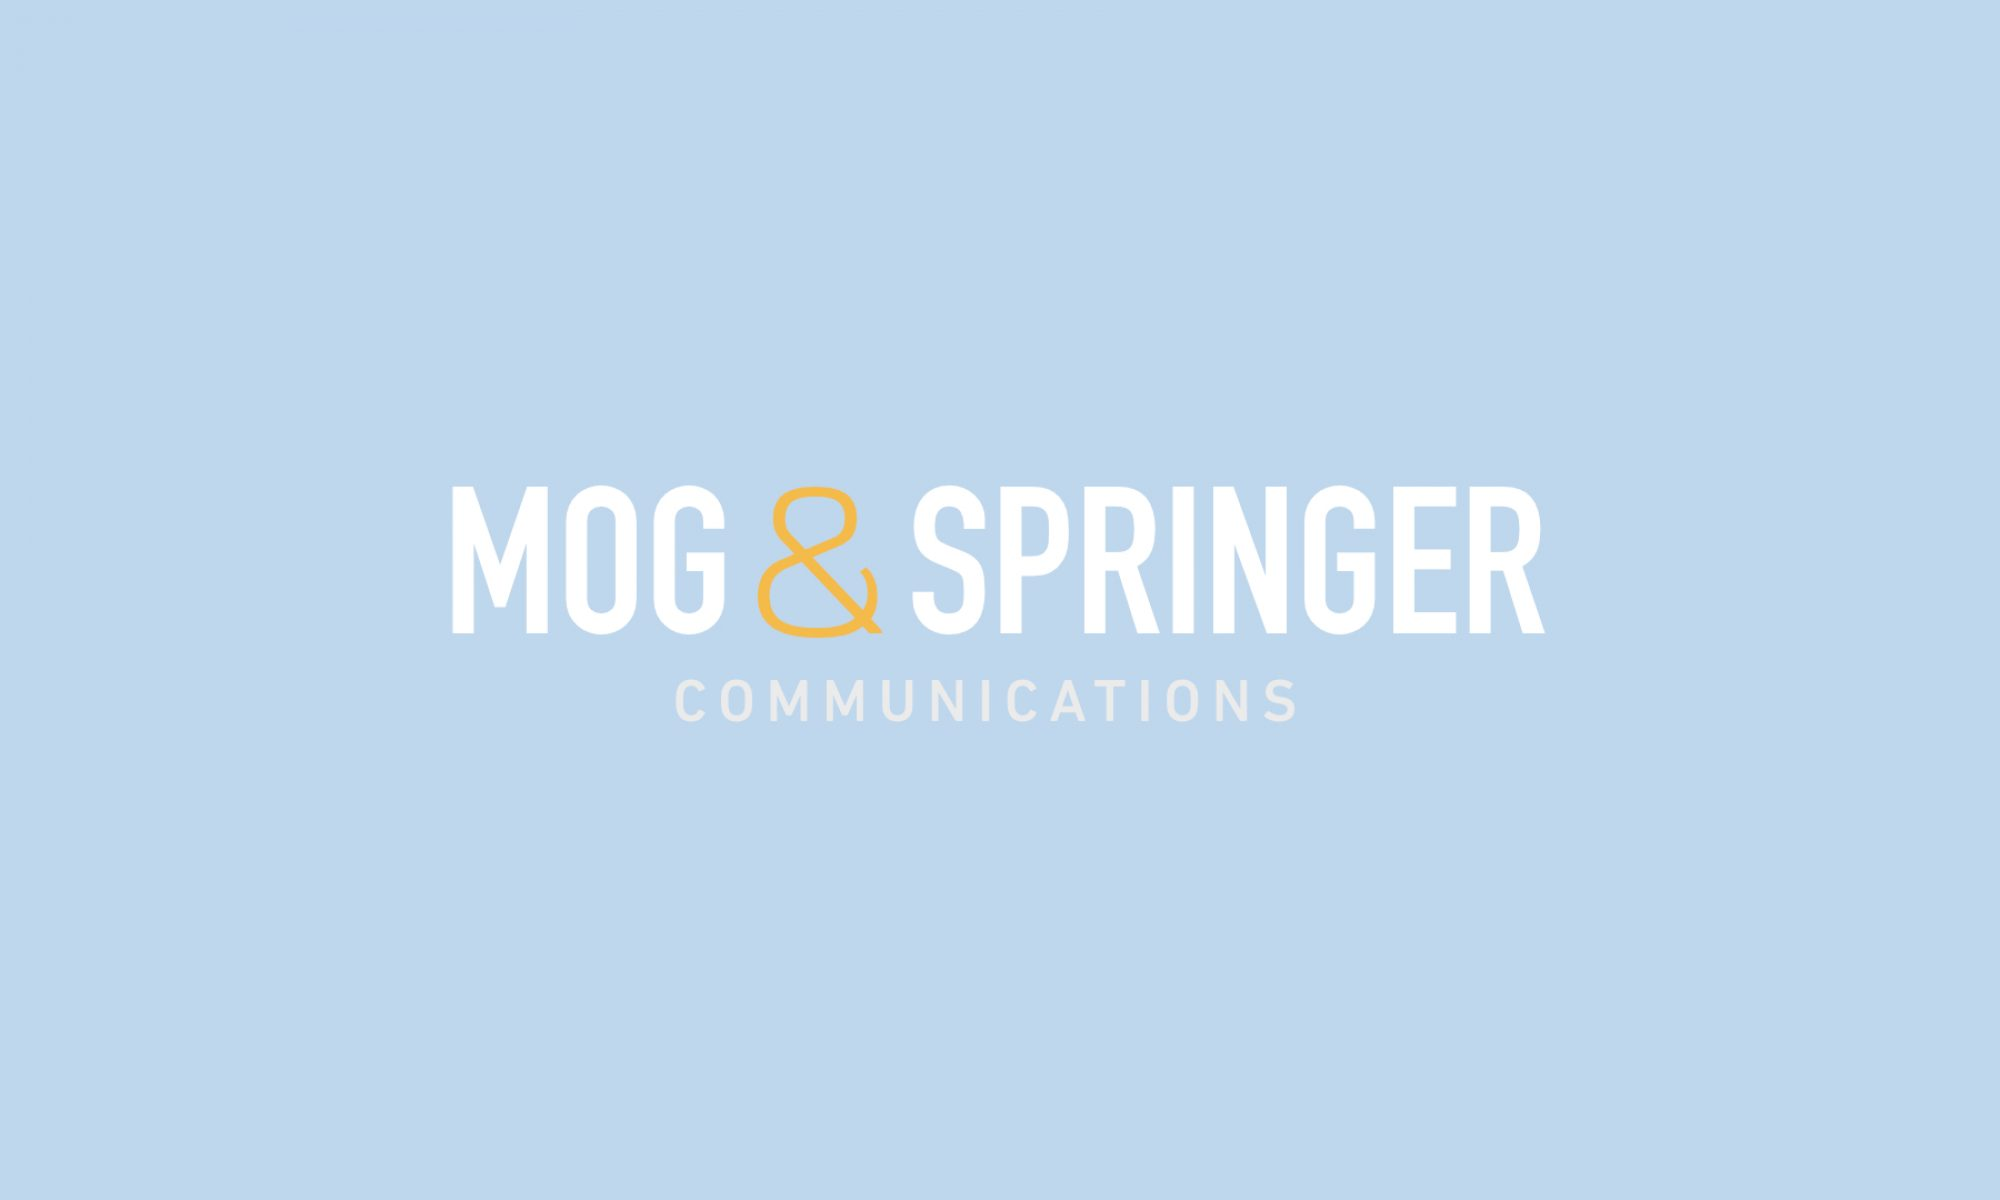 Mog & Springer Communications